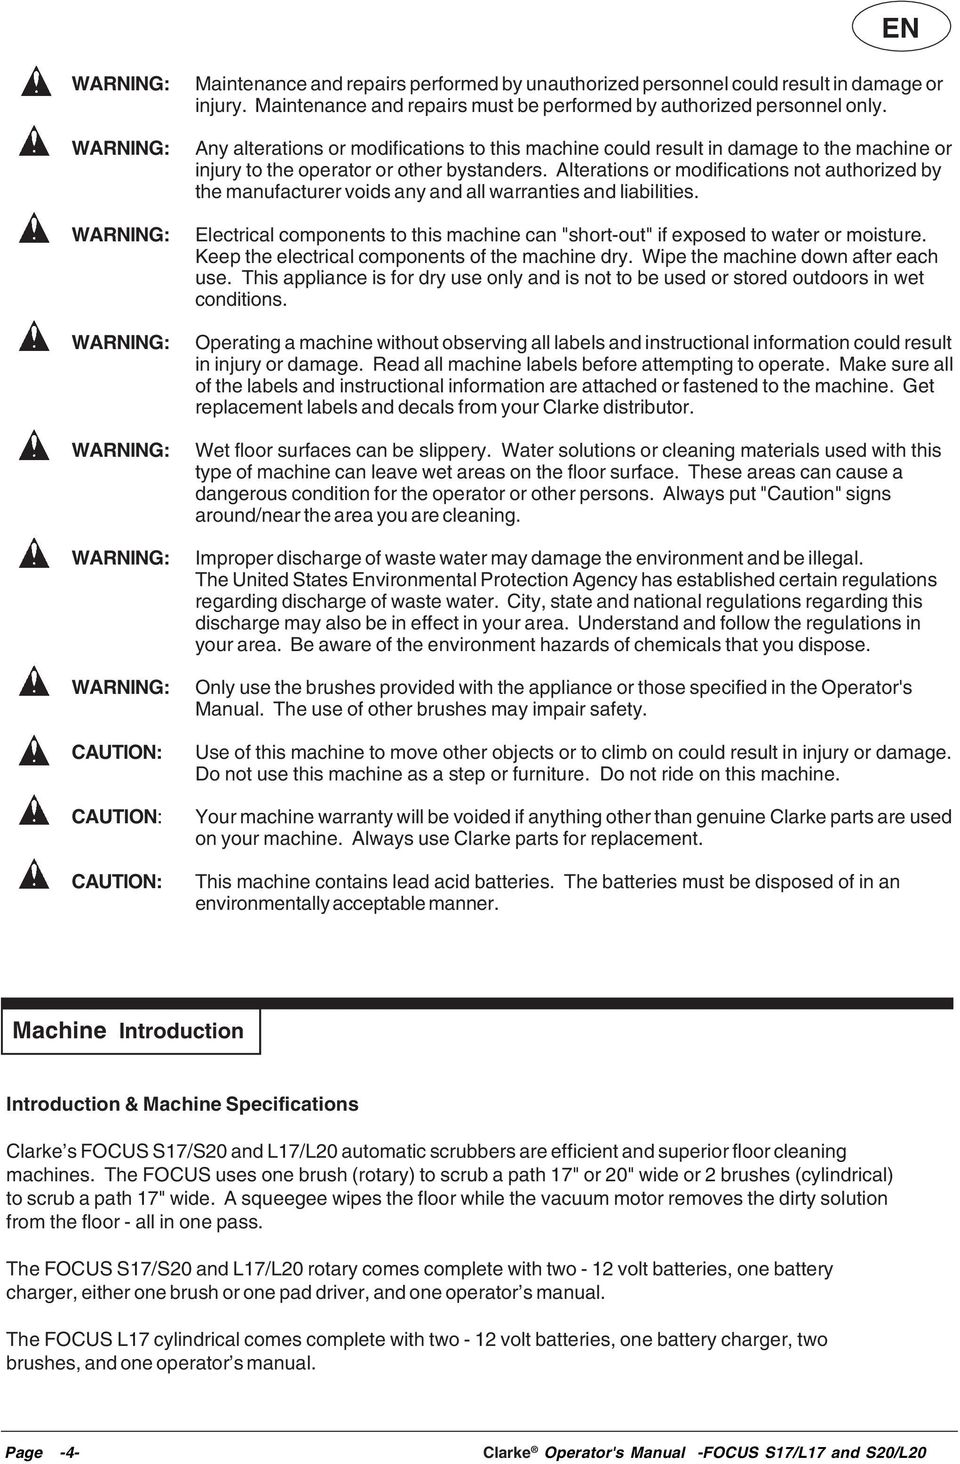 Any alterations or modifications to this machine could result in damage to the machine or injury to the operator or other bystanders.